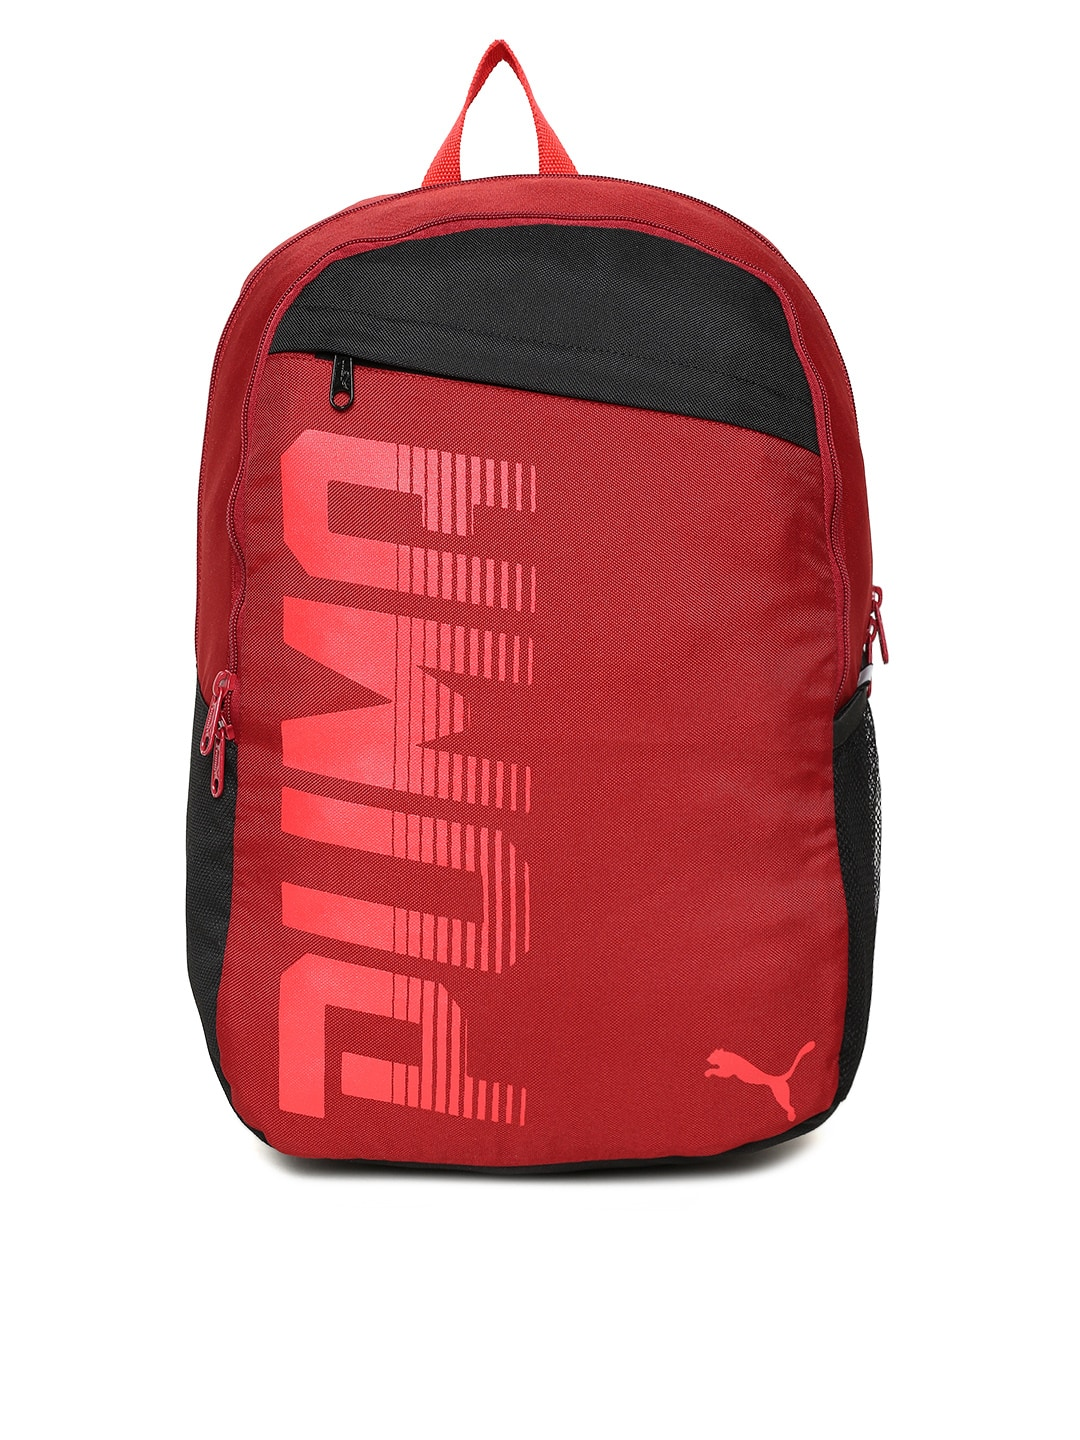 Puma Backpack Laptop Bags - Buy Puma Backpack Laptop Bags online in India 9d2a51d7fa944